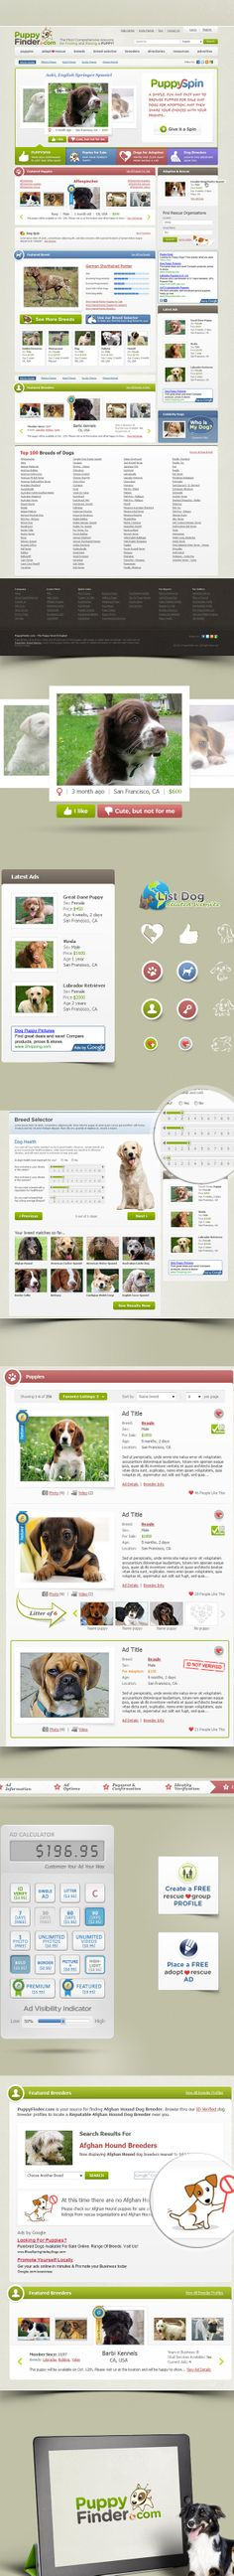 Website for pet business. Dog related website. Created by http://quartsoft.com  #dogs #puppies #design #pets #webdesign #animals